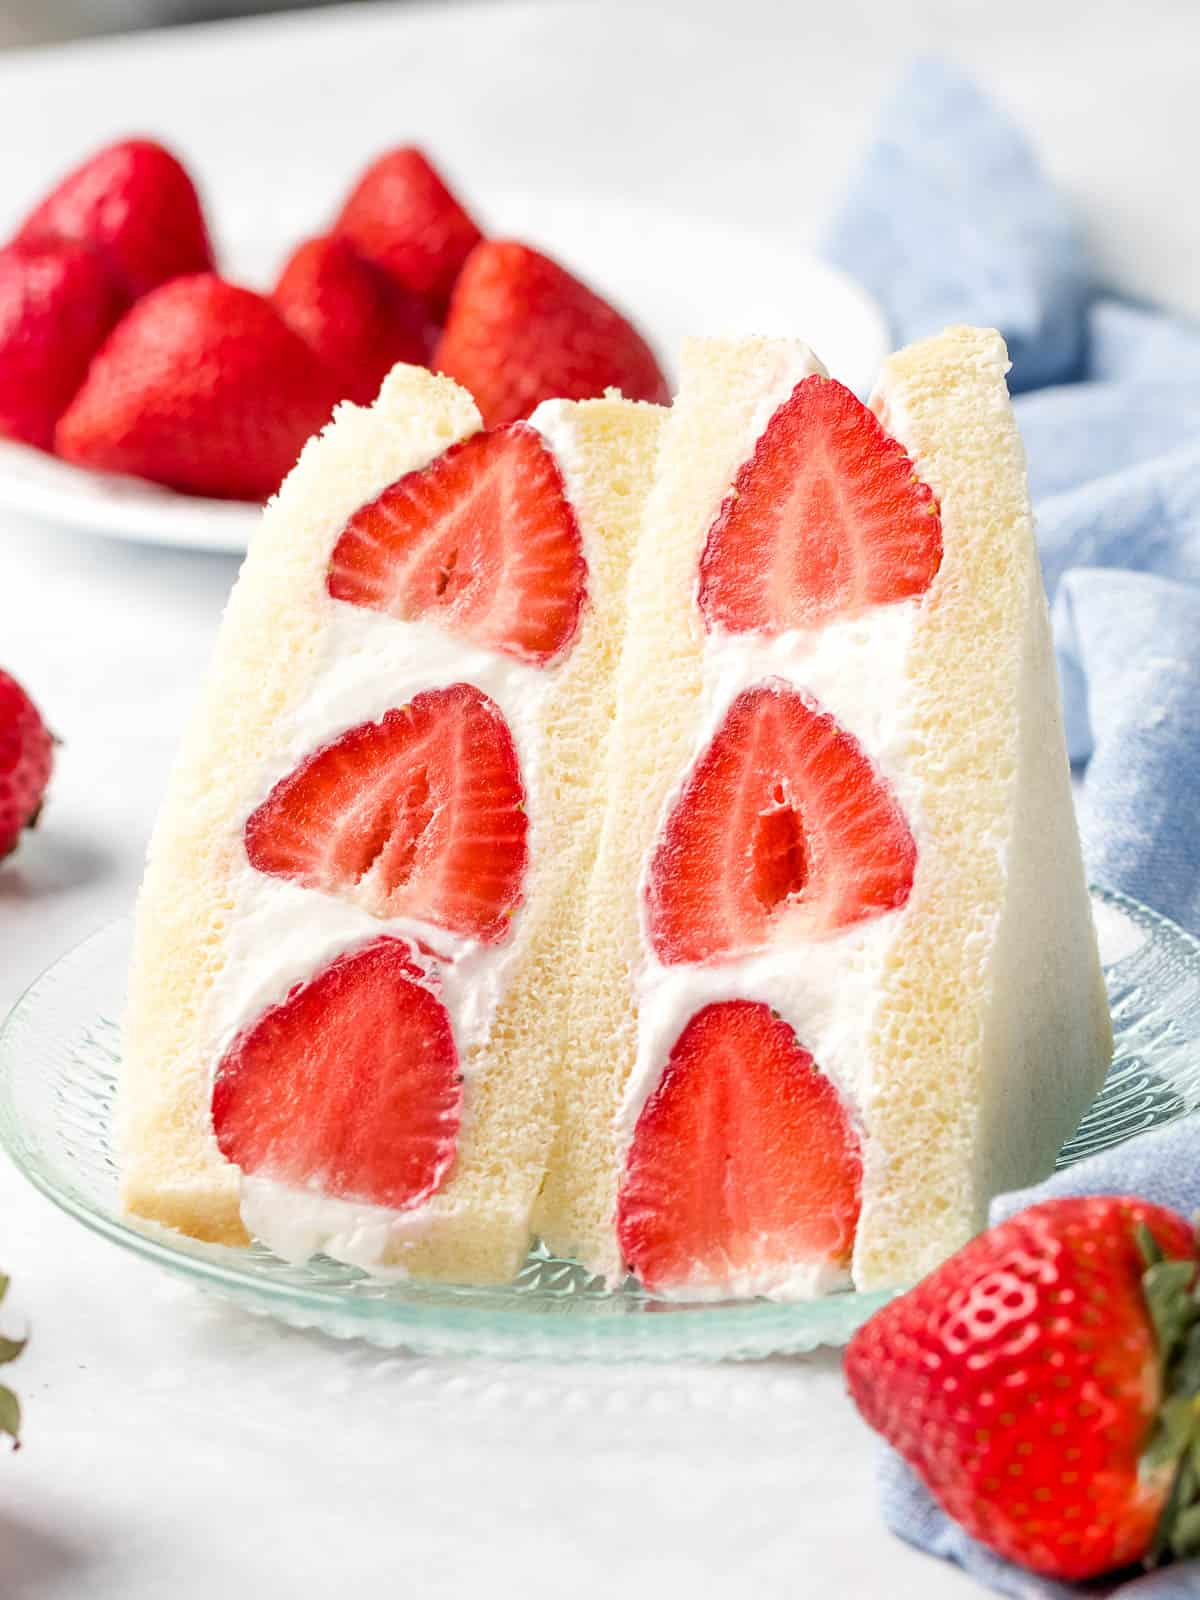 Japanese strawberry sando made with red strawberries and whipped cream sliced in half next to a plate of strawberries.